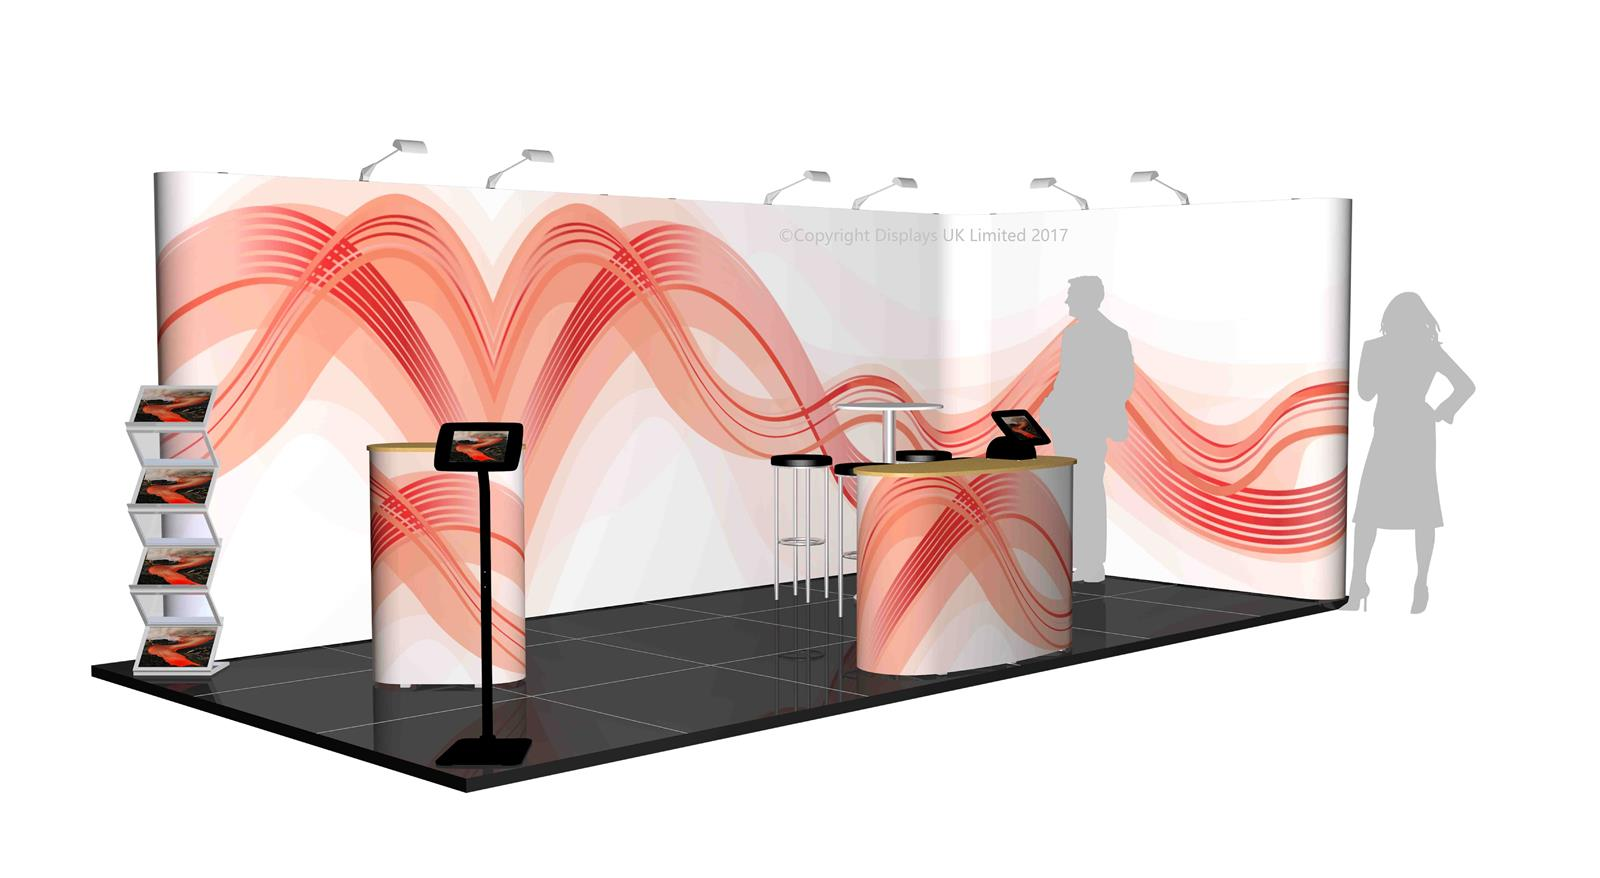 3m x 6m Linked Pop Up Exhibition Stand - Kit 36 - P6x3-2aS